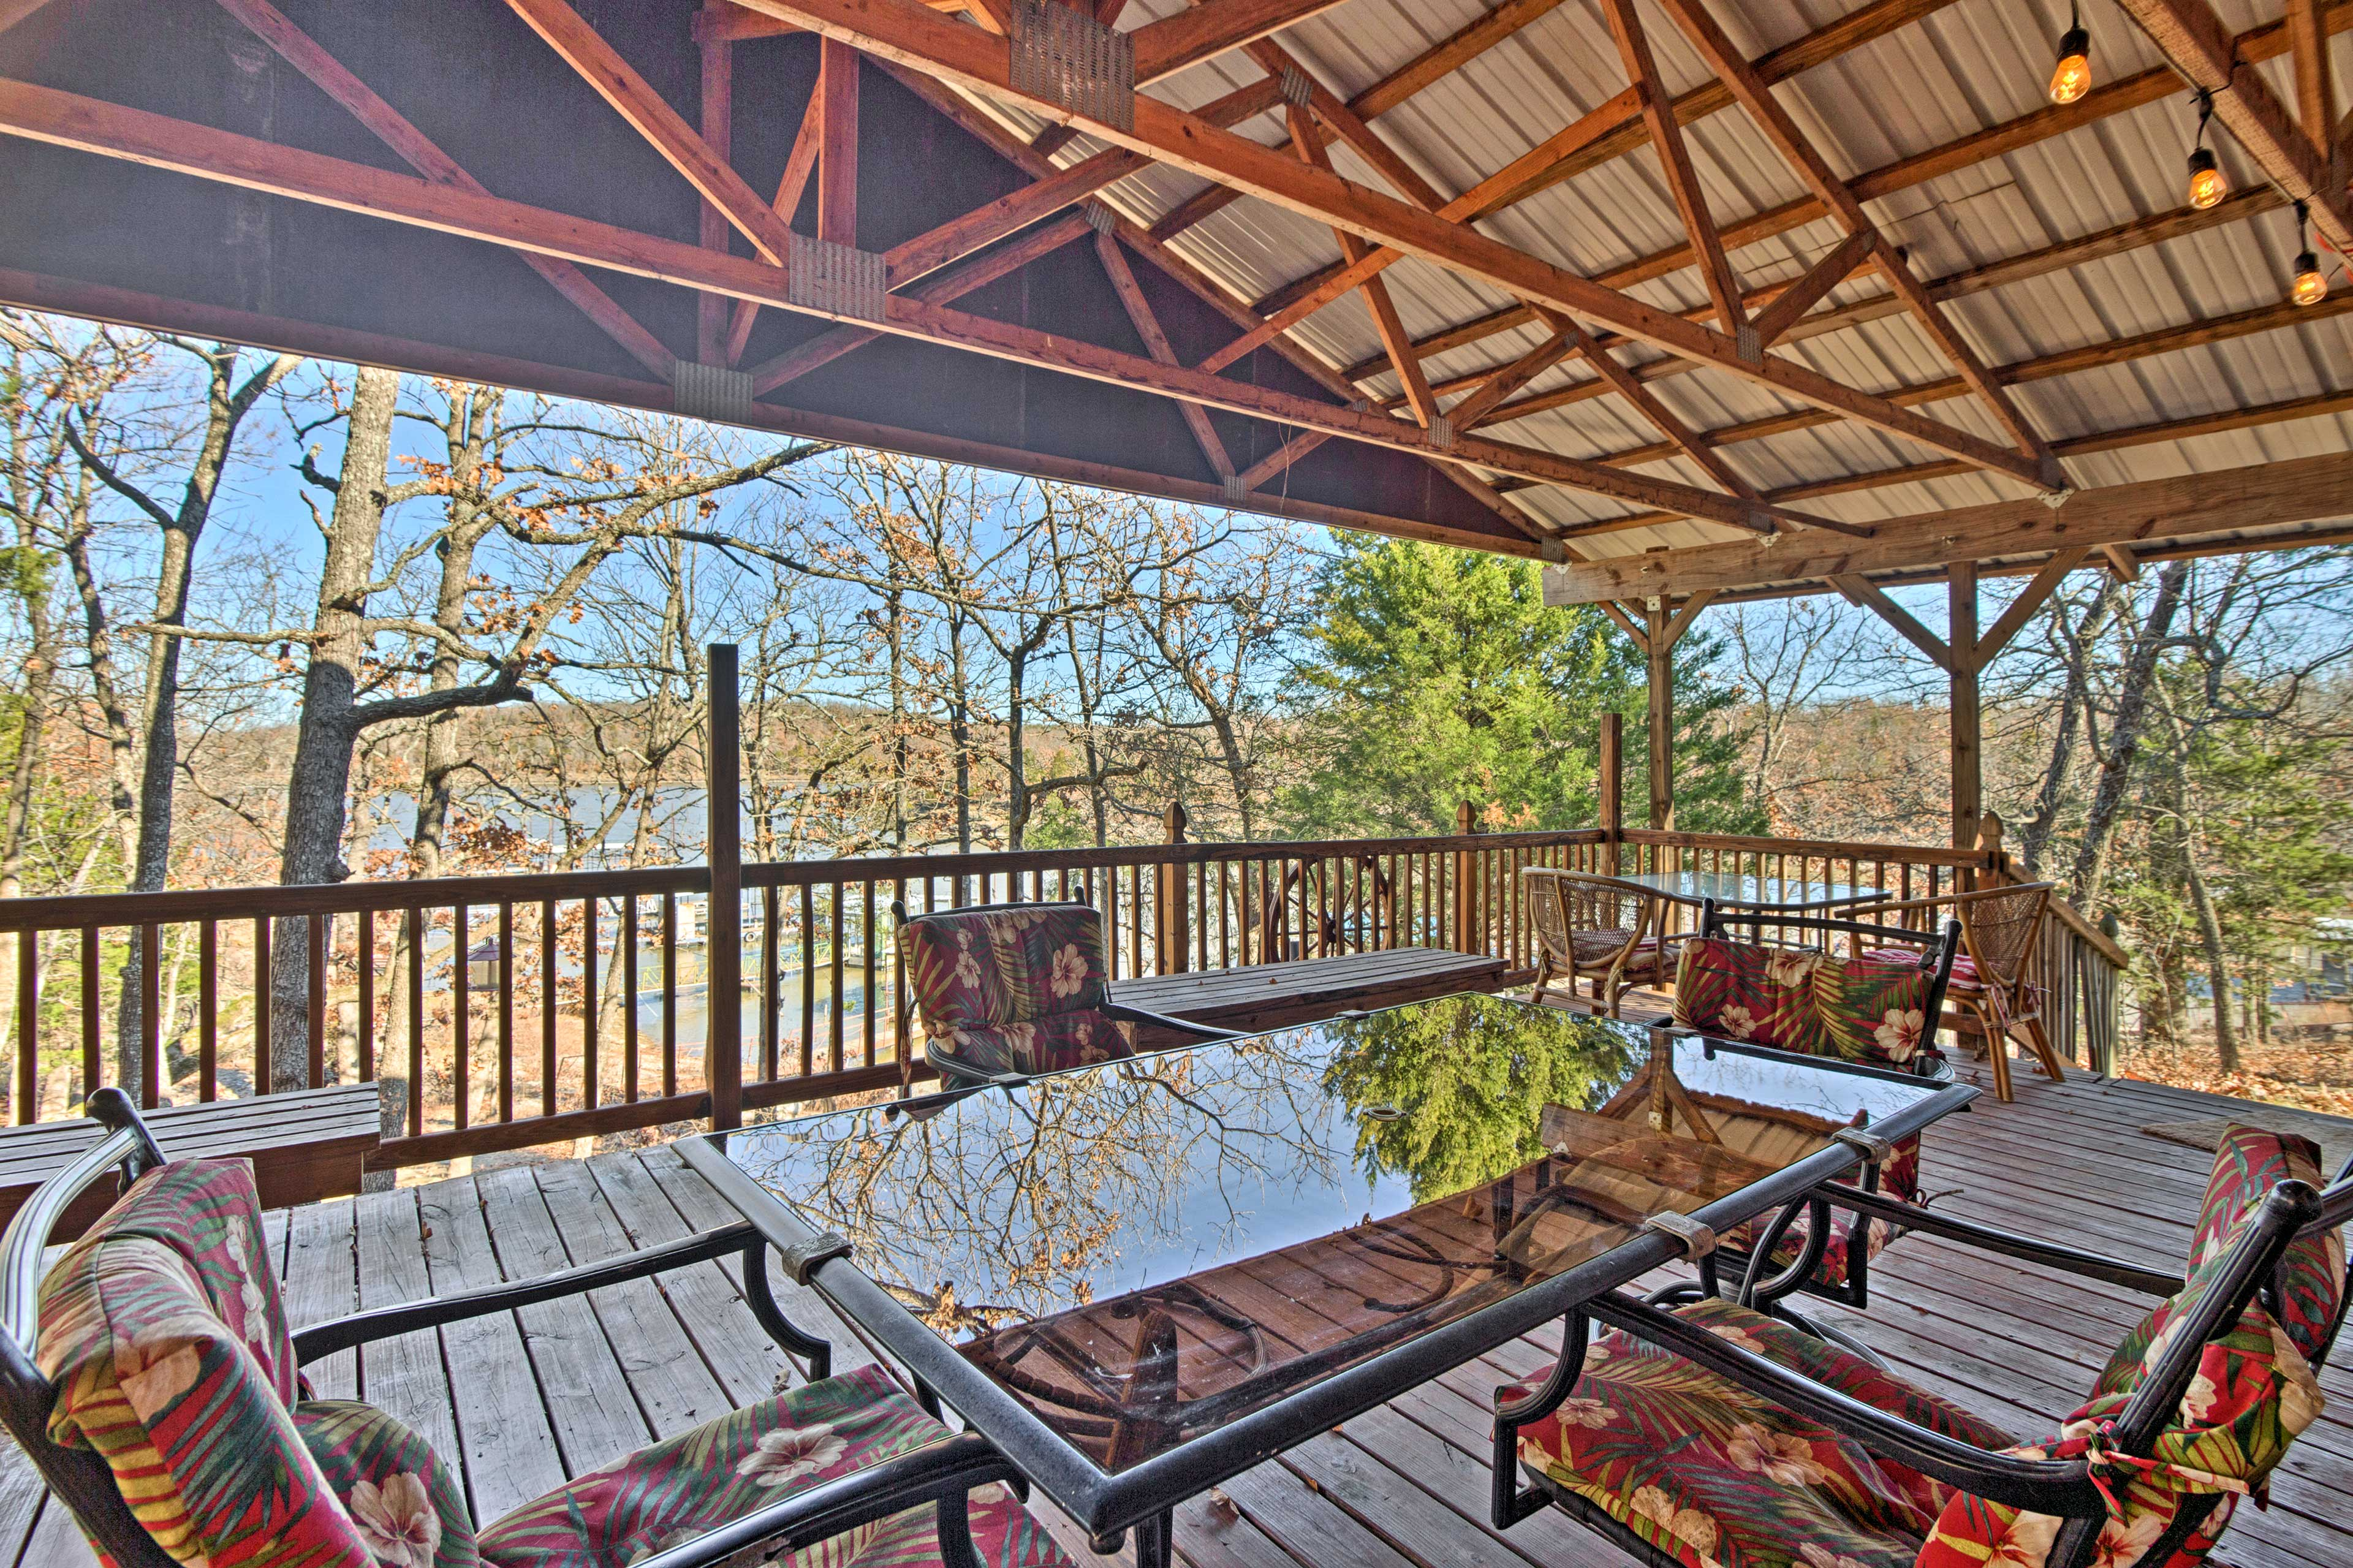 Relax at this rental home on Lake Eufaula in Canadian, Oklahoma!